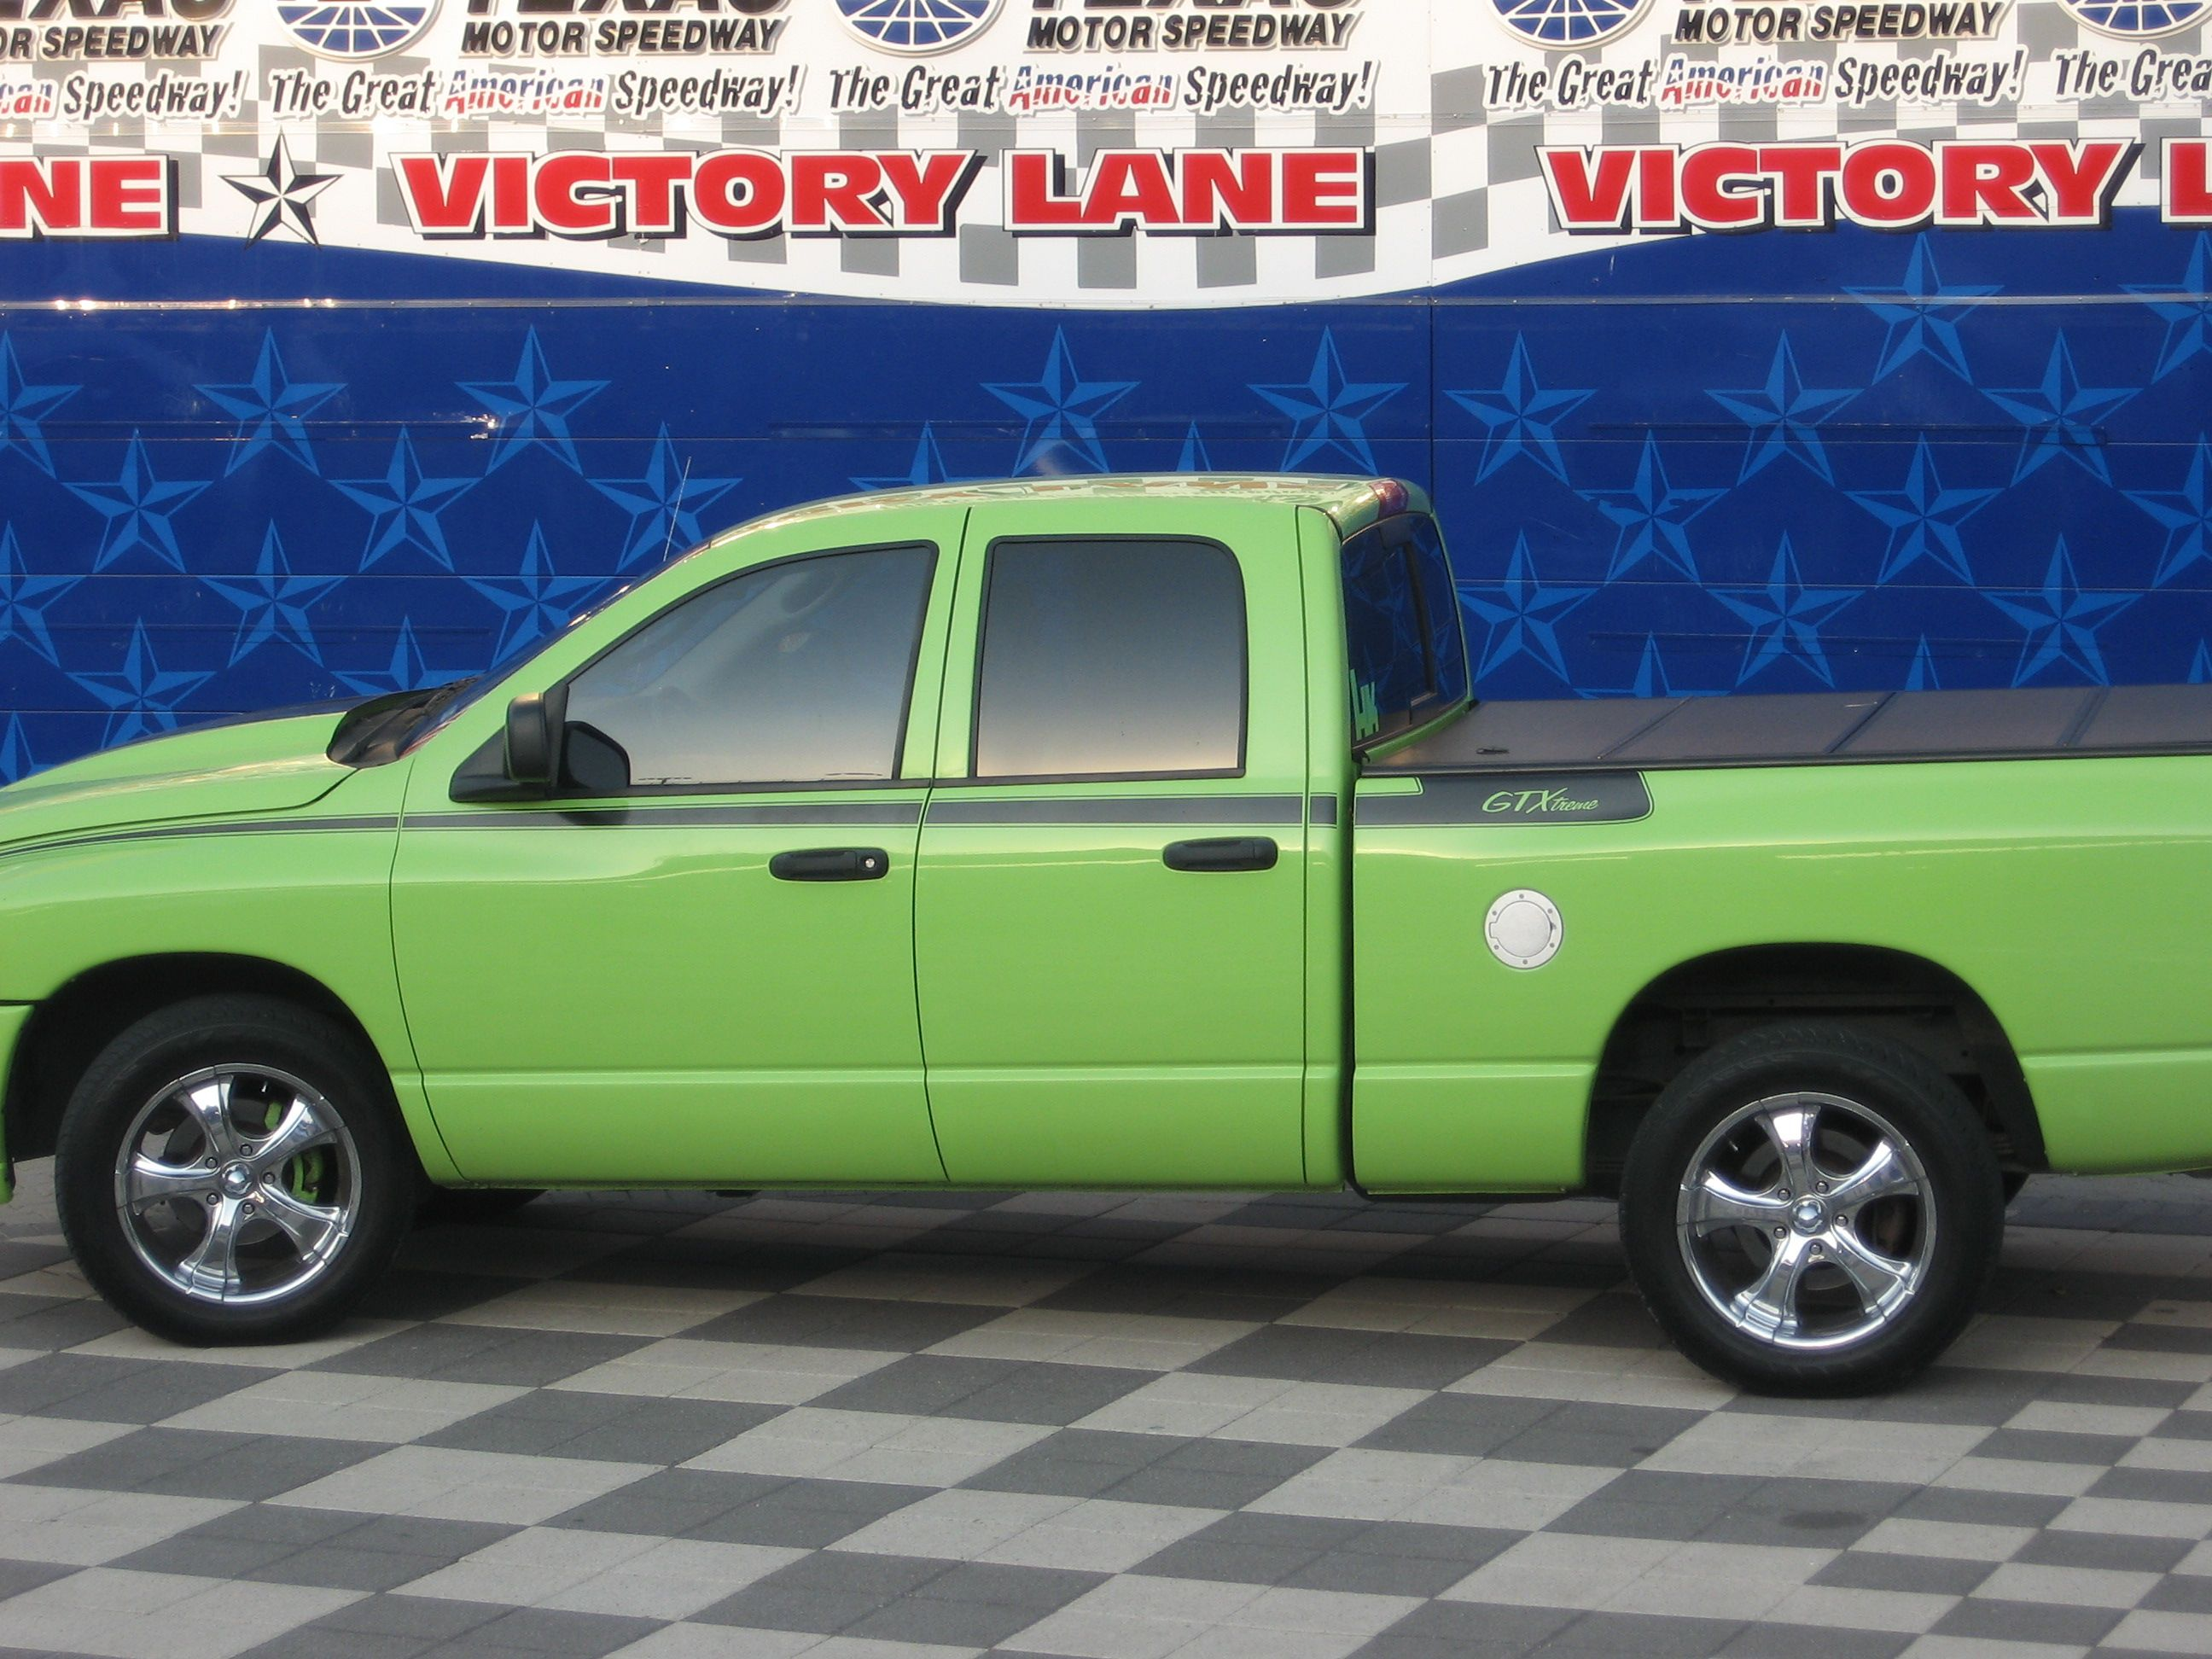 2005 Ram Gtxtreme Texas Motor Speedway Fort Worth Texas Dodge